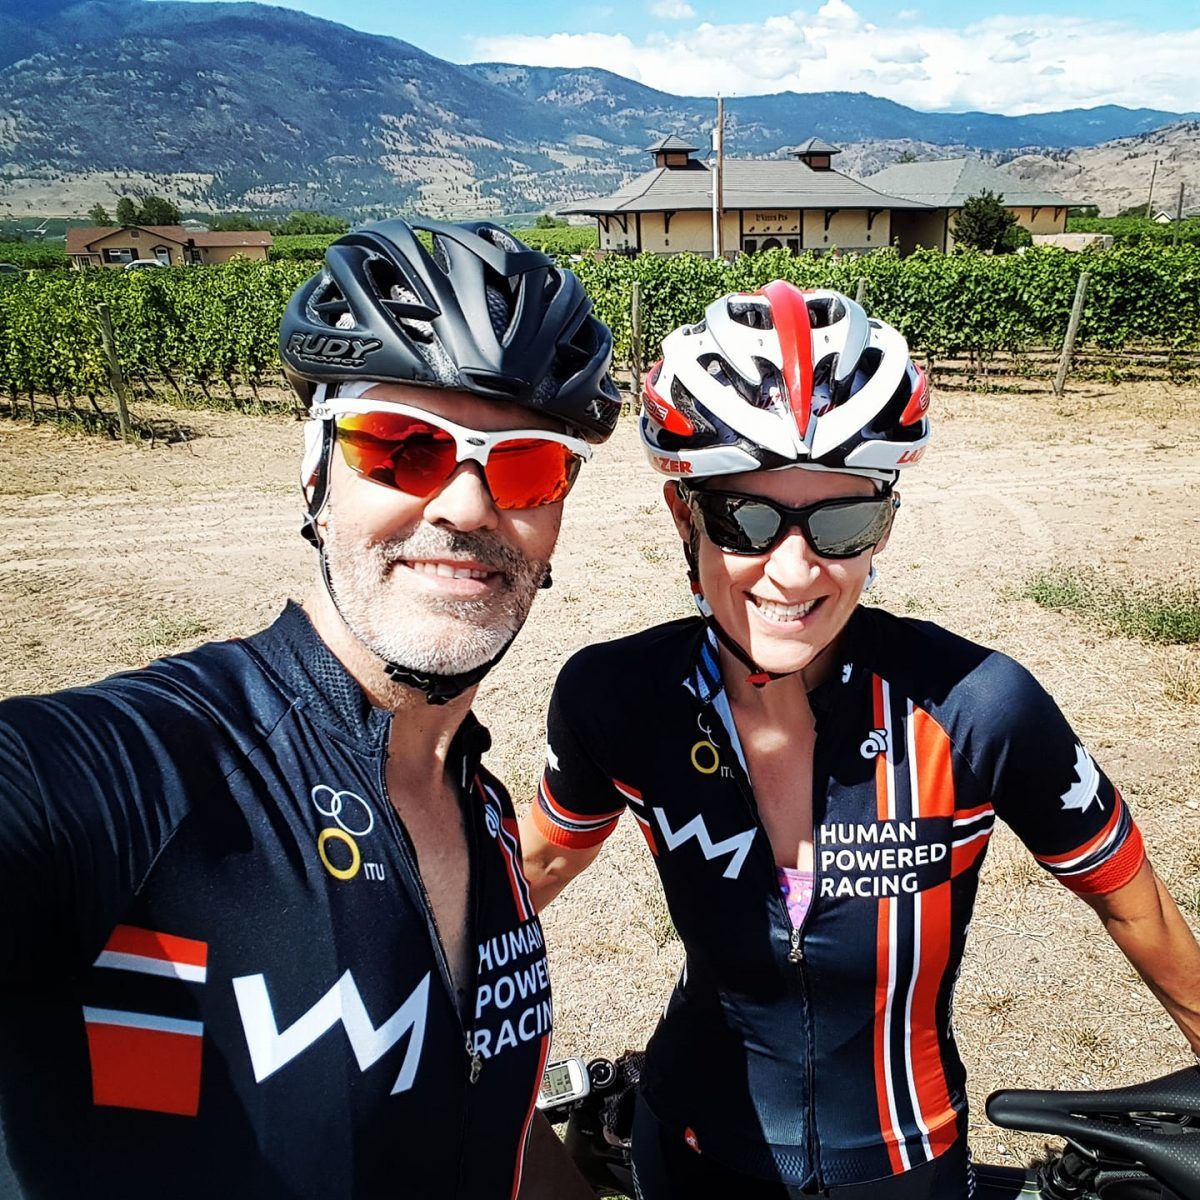 Dominic and Crystal Bergeron in Okanagan in HPR Bike Kits on ride